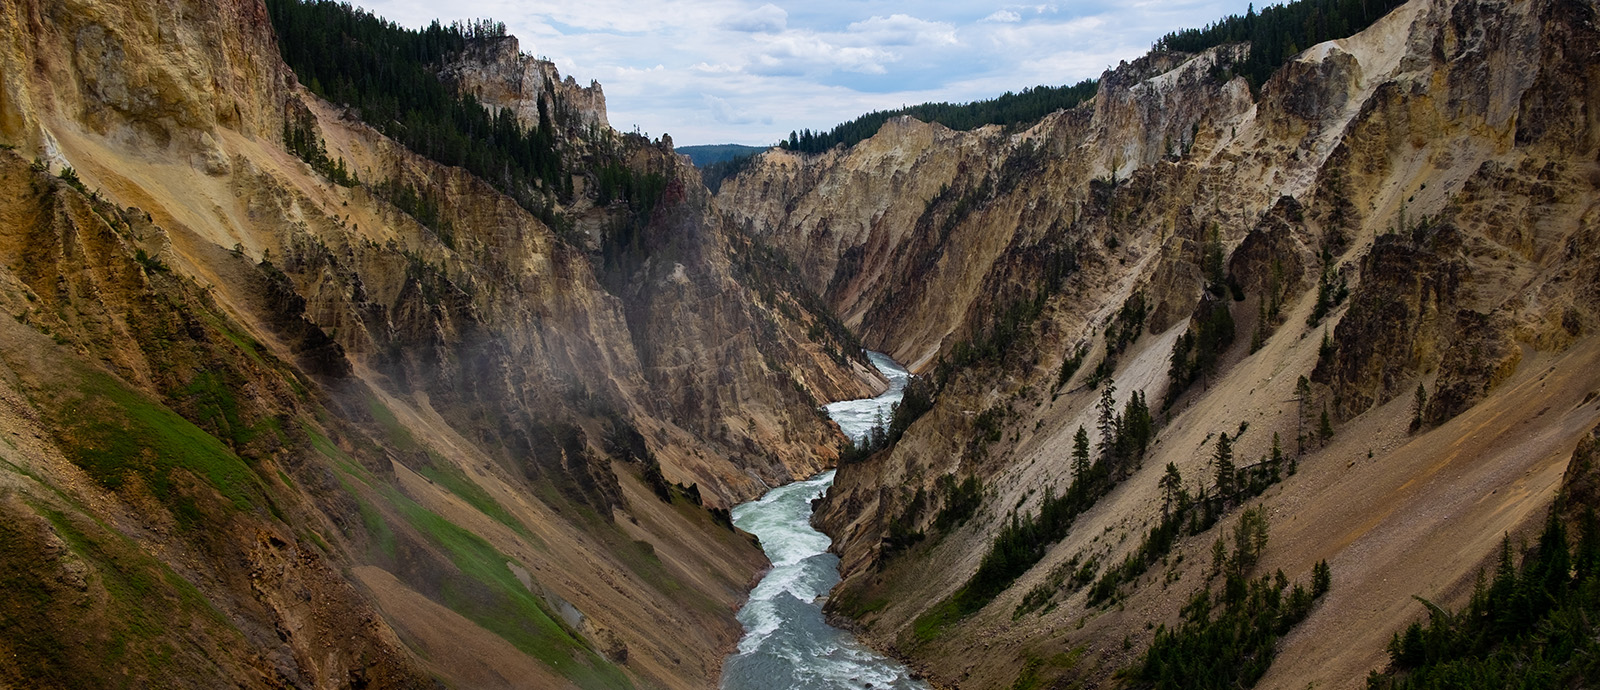 Greater Yellowstone Lodge-Based Adventure